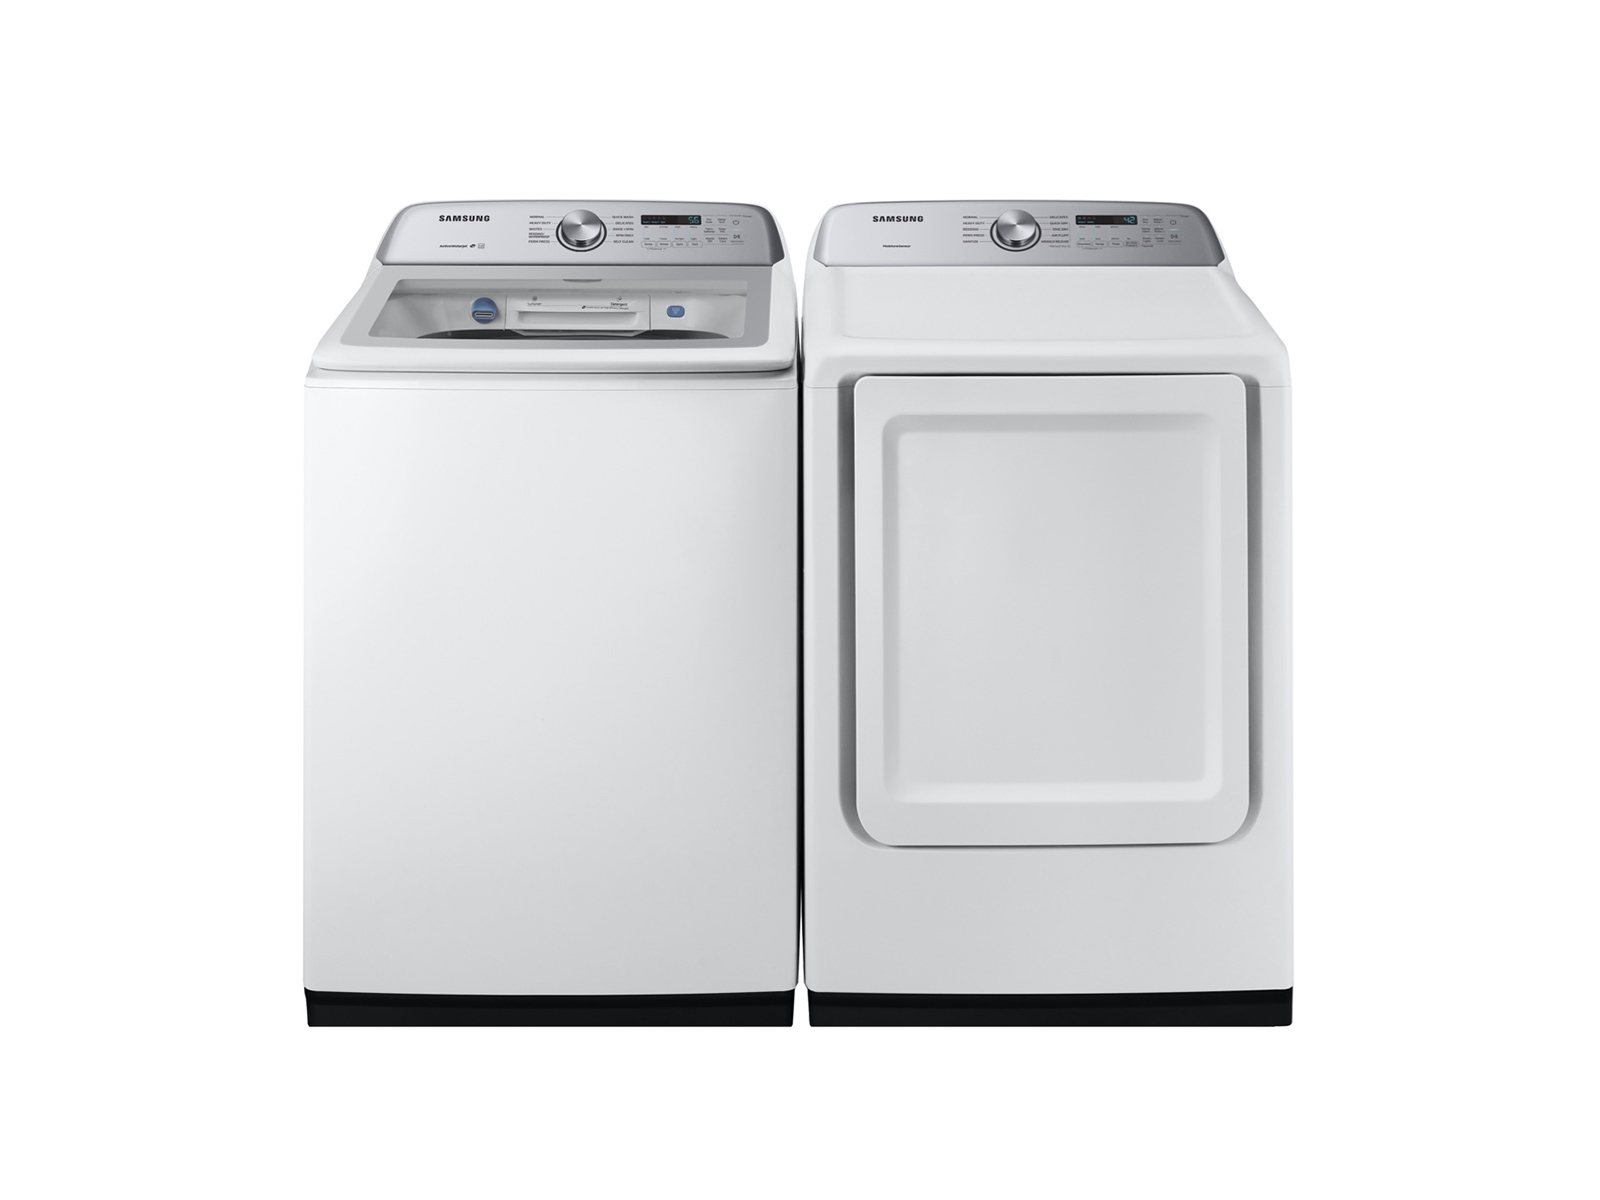 Samsung Top Load Washer & Dryer set with Active Water Jet and Sensor Dry in White - Laundry Washing Machine